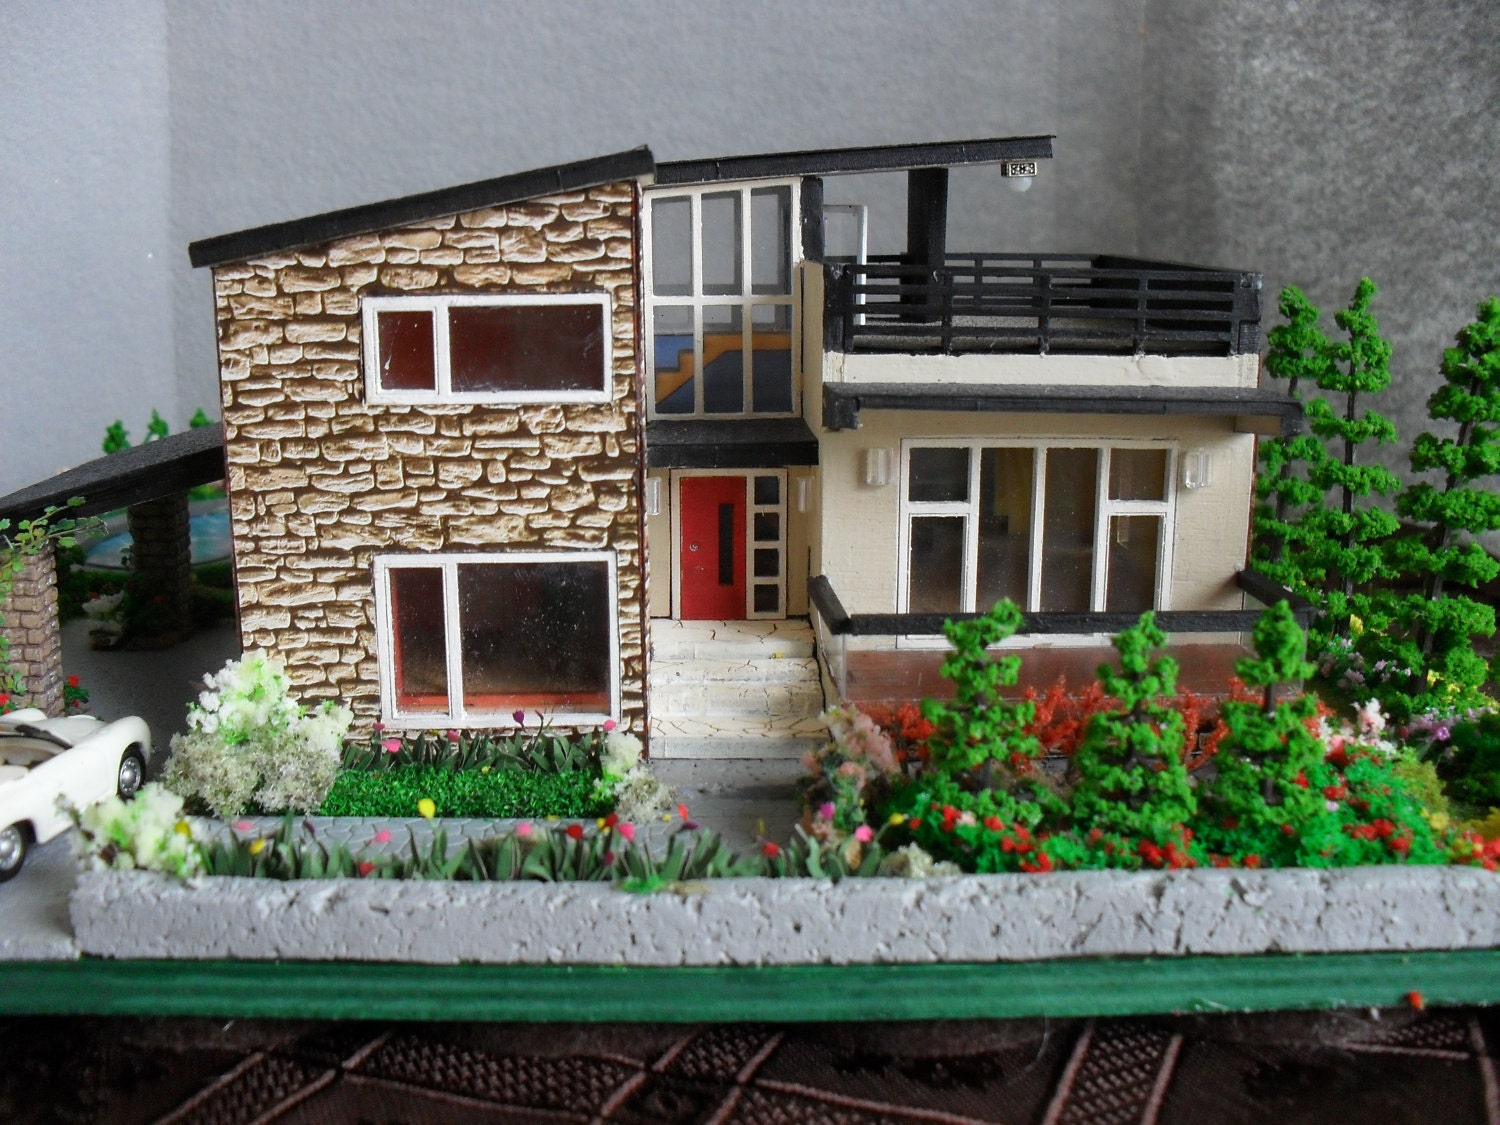 Modern miniature model house with property ho scale by Small home models pictures